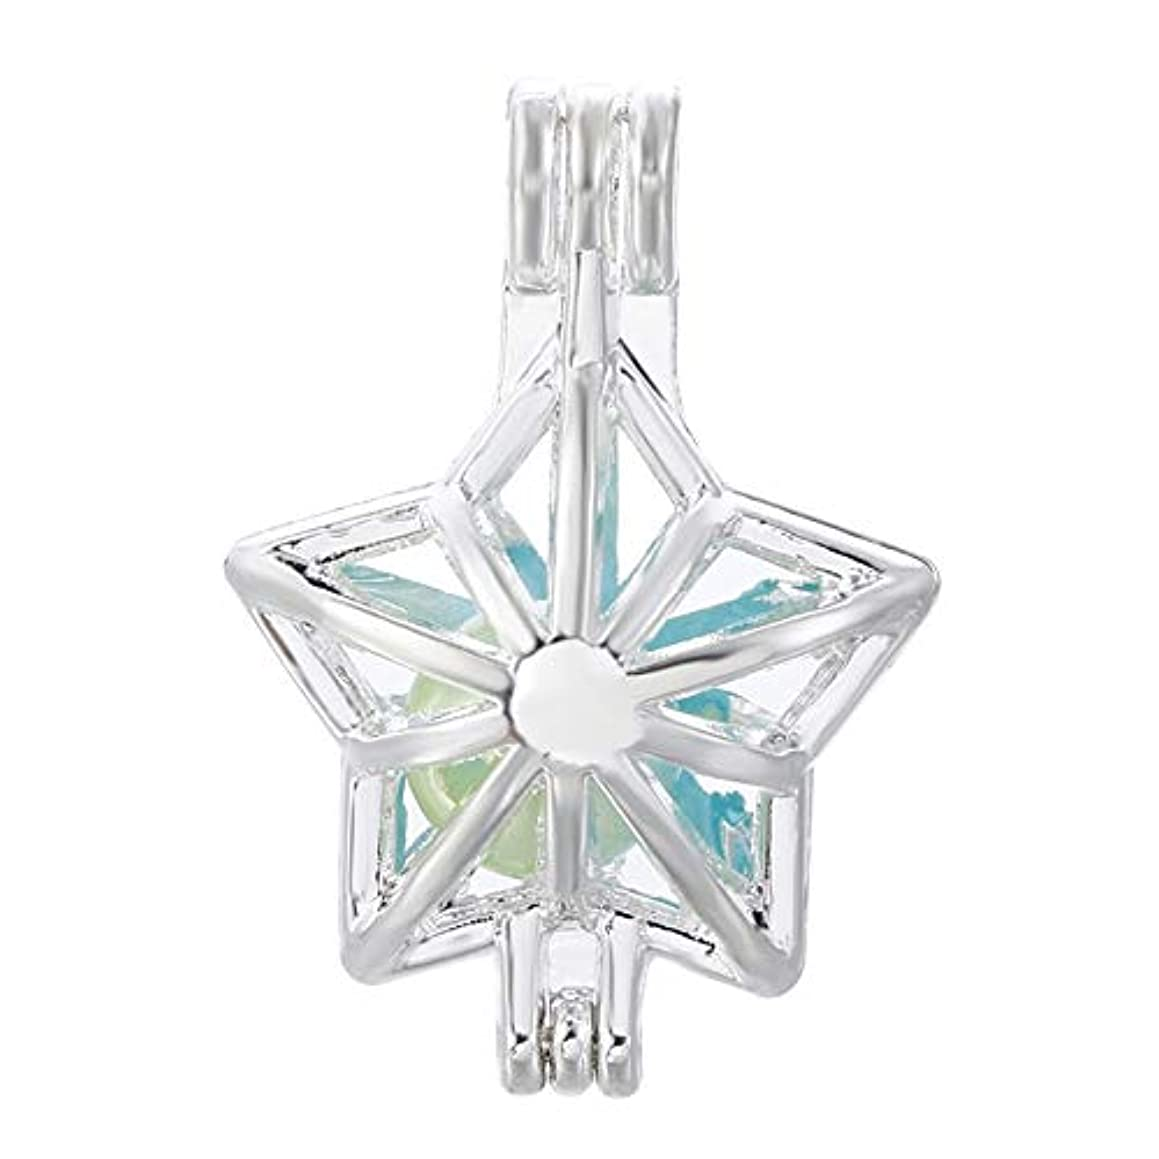 10pcs Christmas Star Pearl Cage Bright Silver Beads Cage Locket Pendant Jewelry Making-for Oyster Pearls, Essential Oil Diffuser, Fun Gifts (Christmas Star)